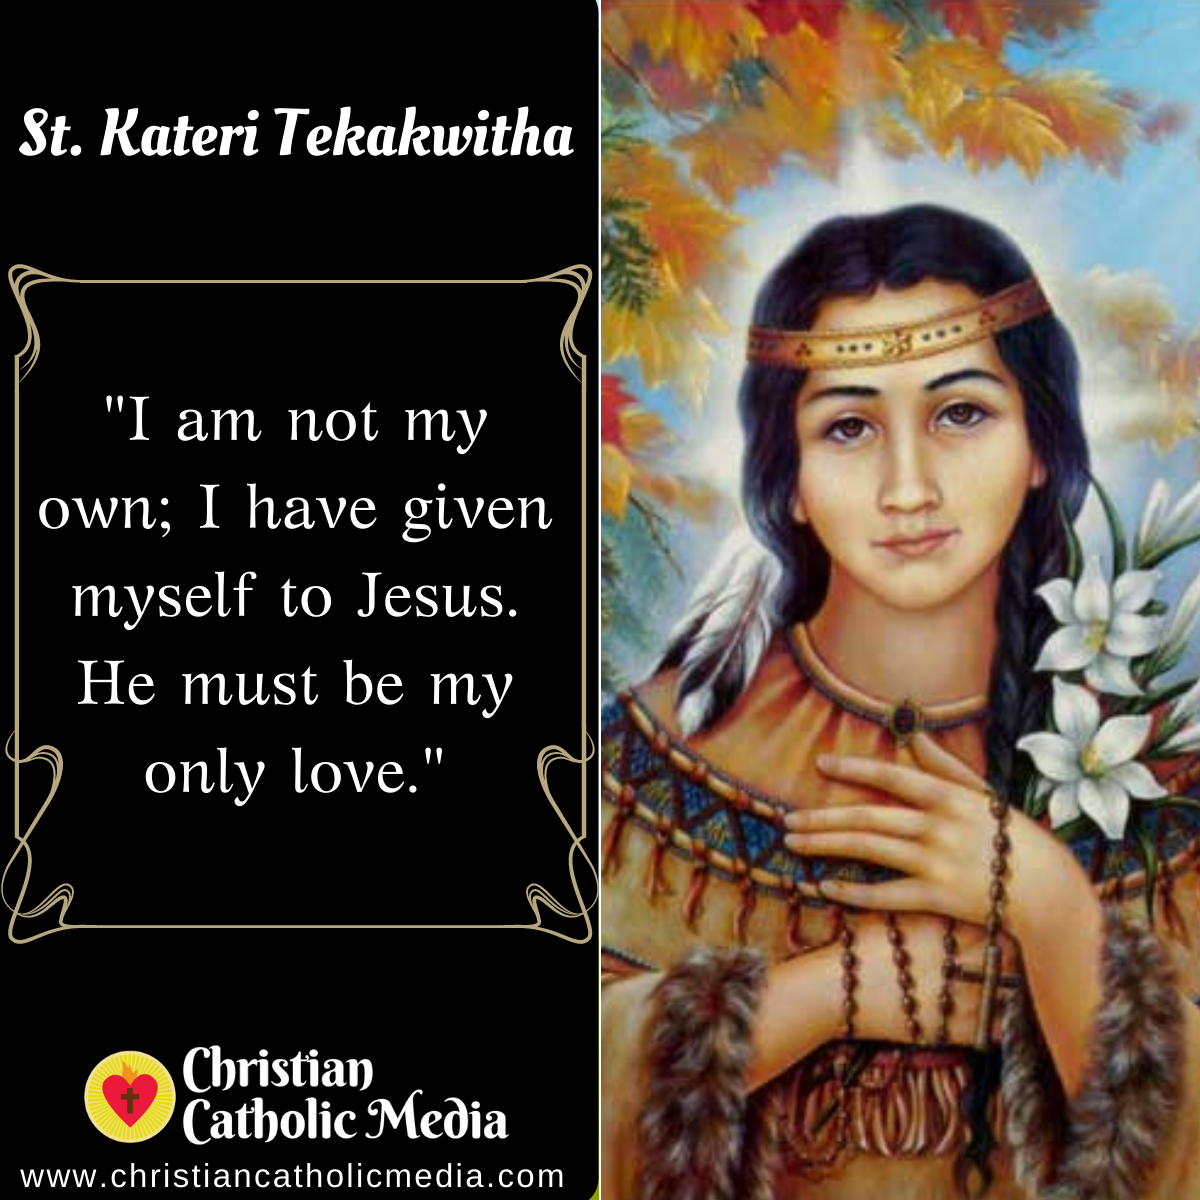 St. Kateri Tekakwitha - Tuesday July 14, 2020